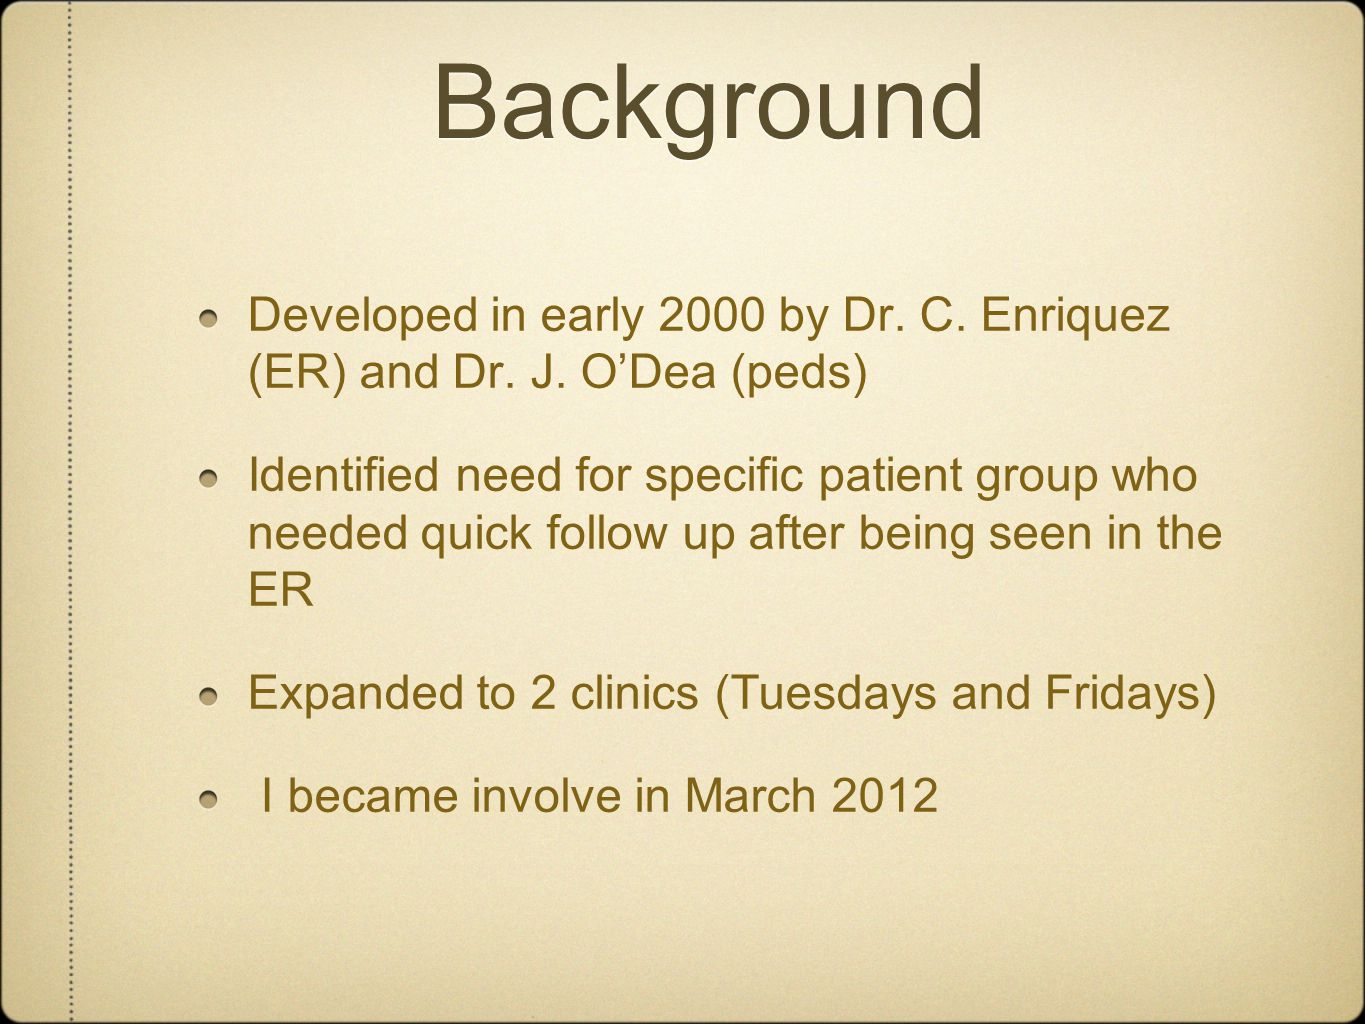 Background Developed in early 2000 by Dr. C. Enriquez (ER) and Dr. J. O'Dea (peds) Identified need for specific patient group who needed quick follow